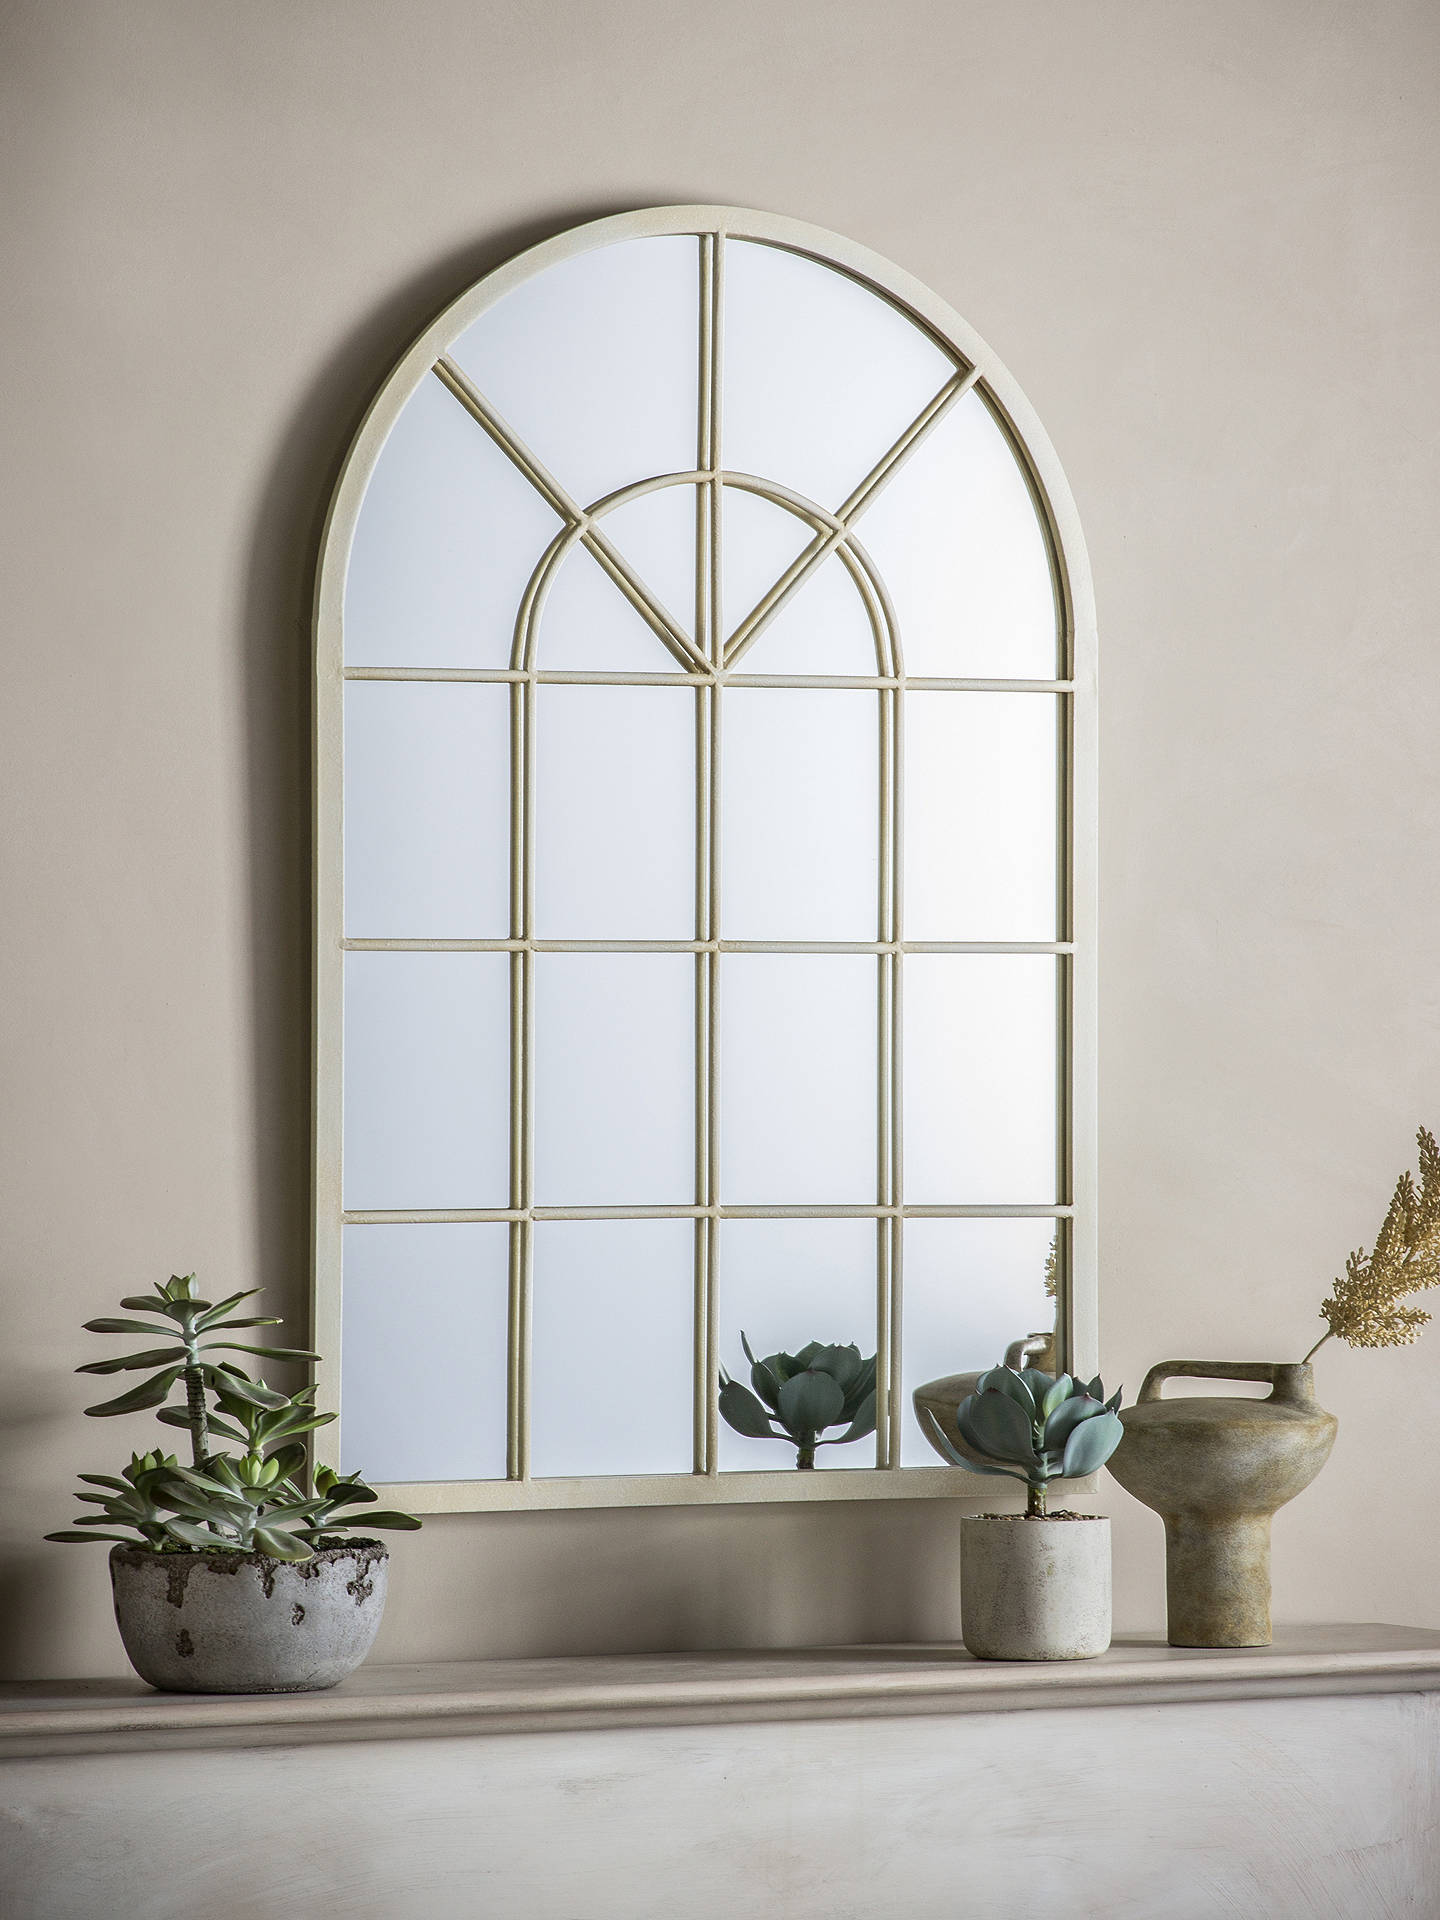 Buy John Lewis & Partners Metal Window Mirror, 90 x 60cm, Cream Online at johnlewis.com